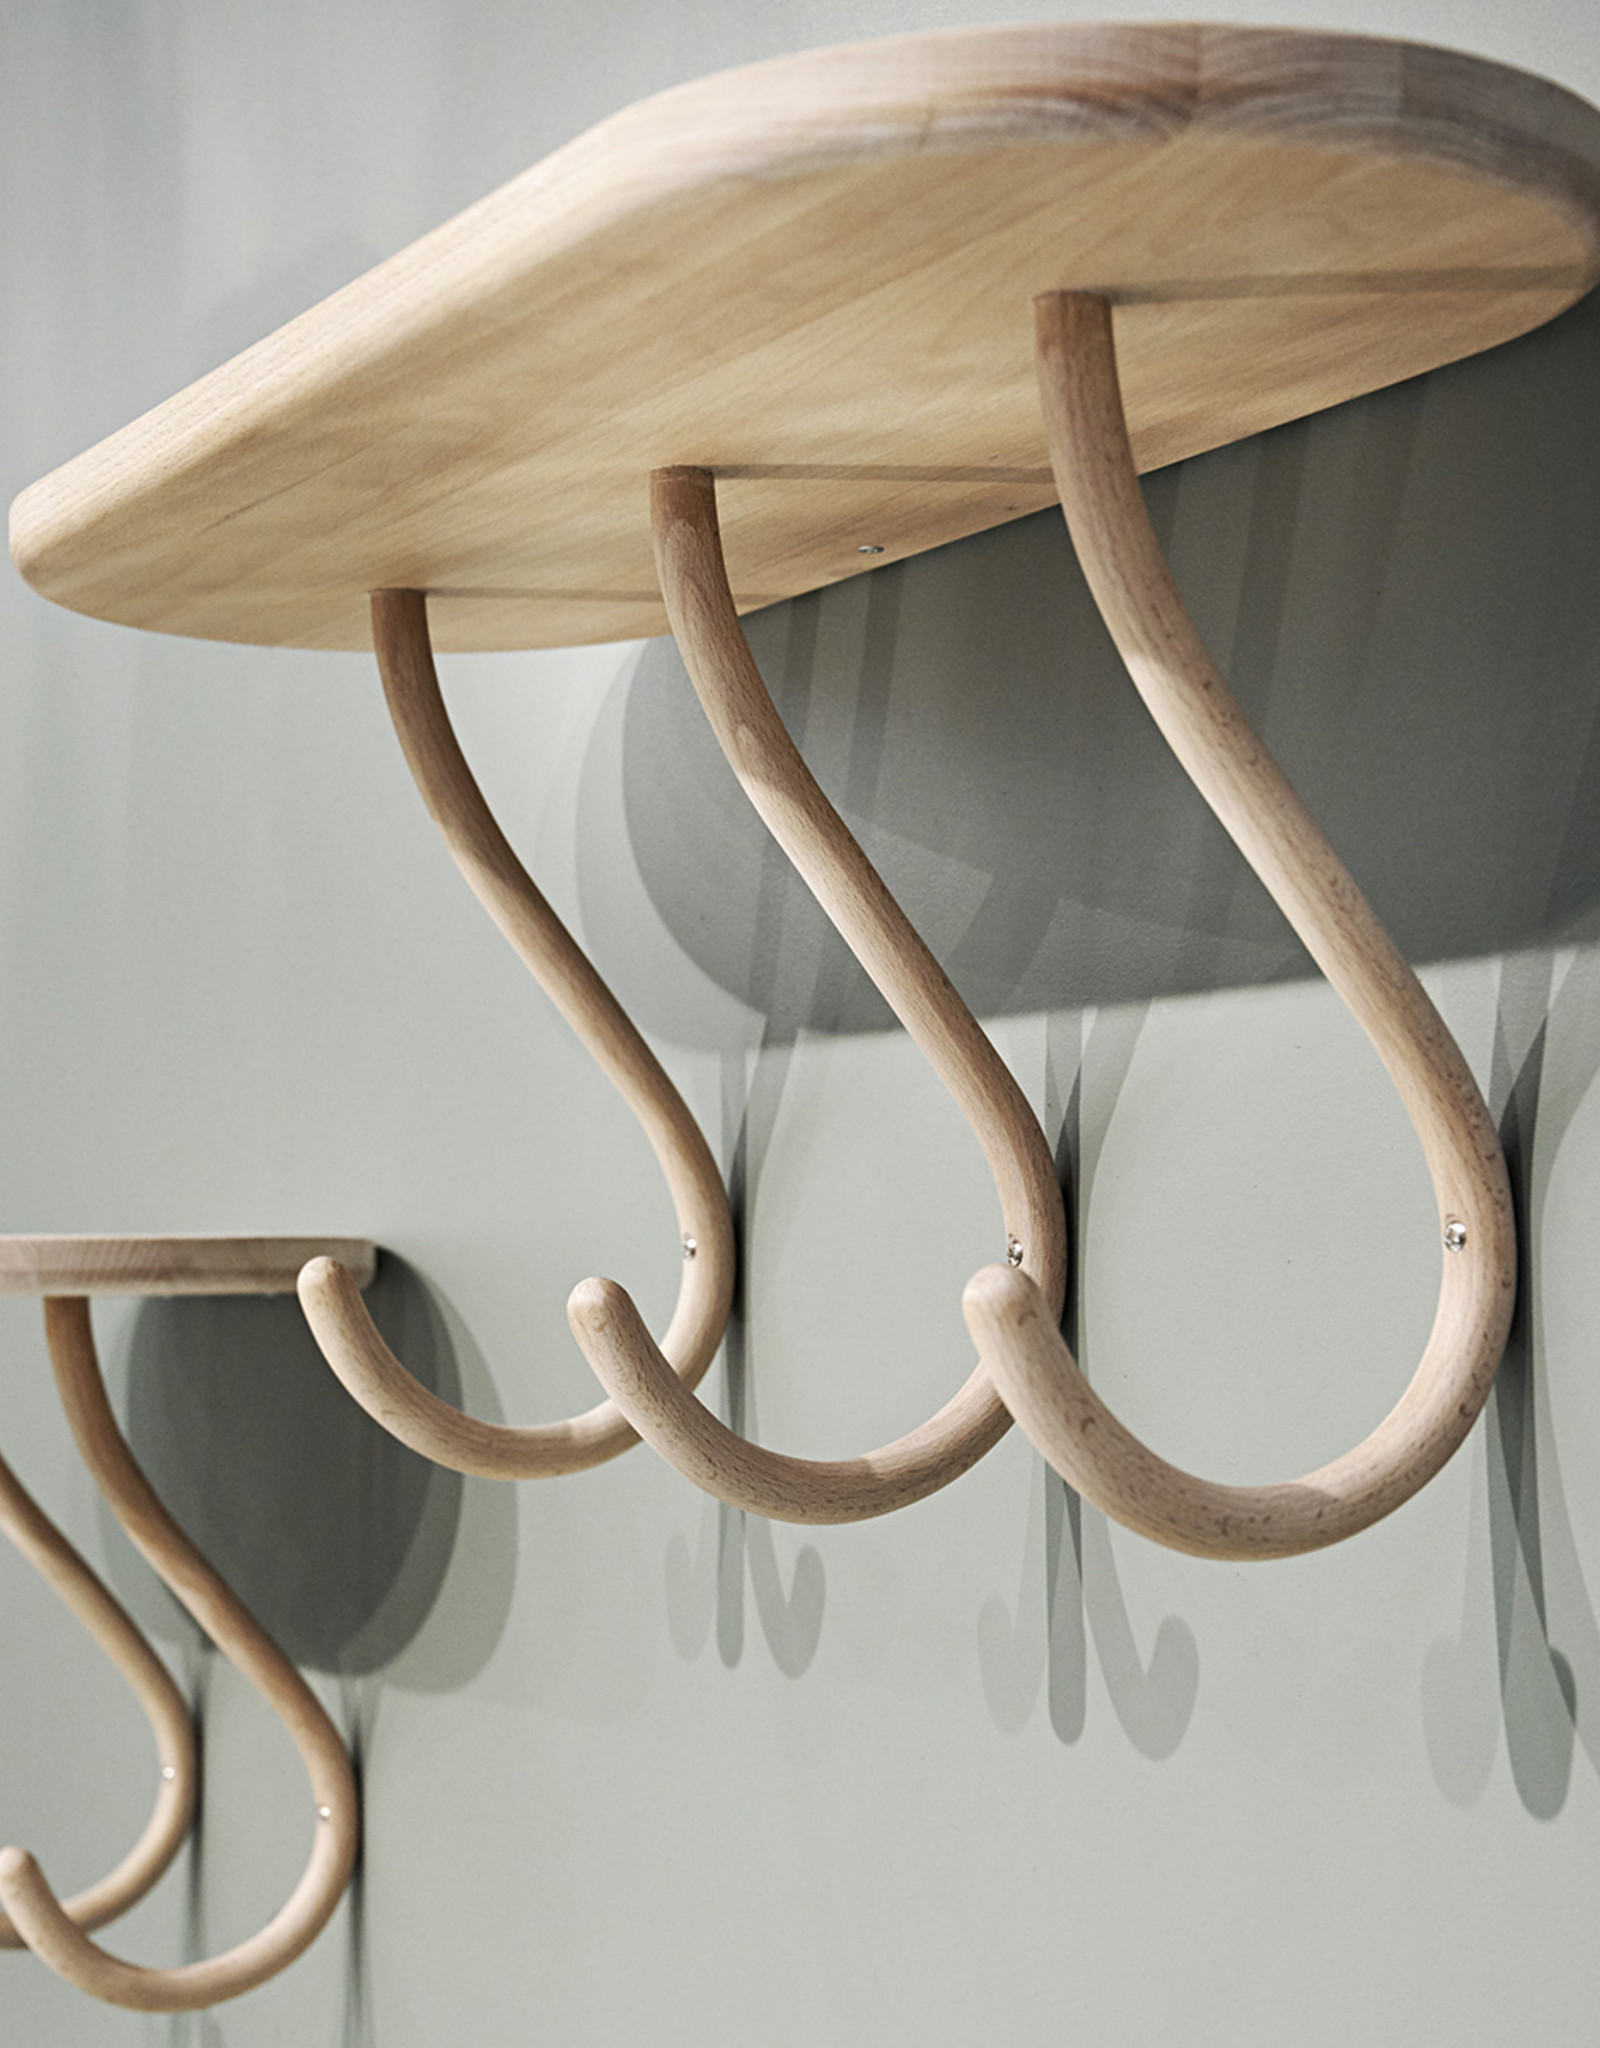 Kapten 3 by Mia Cullin | 3 Hooks| Shelf | White pigment lacquer beech